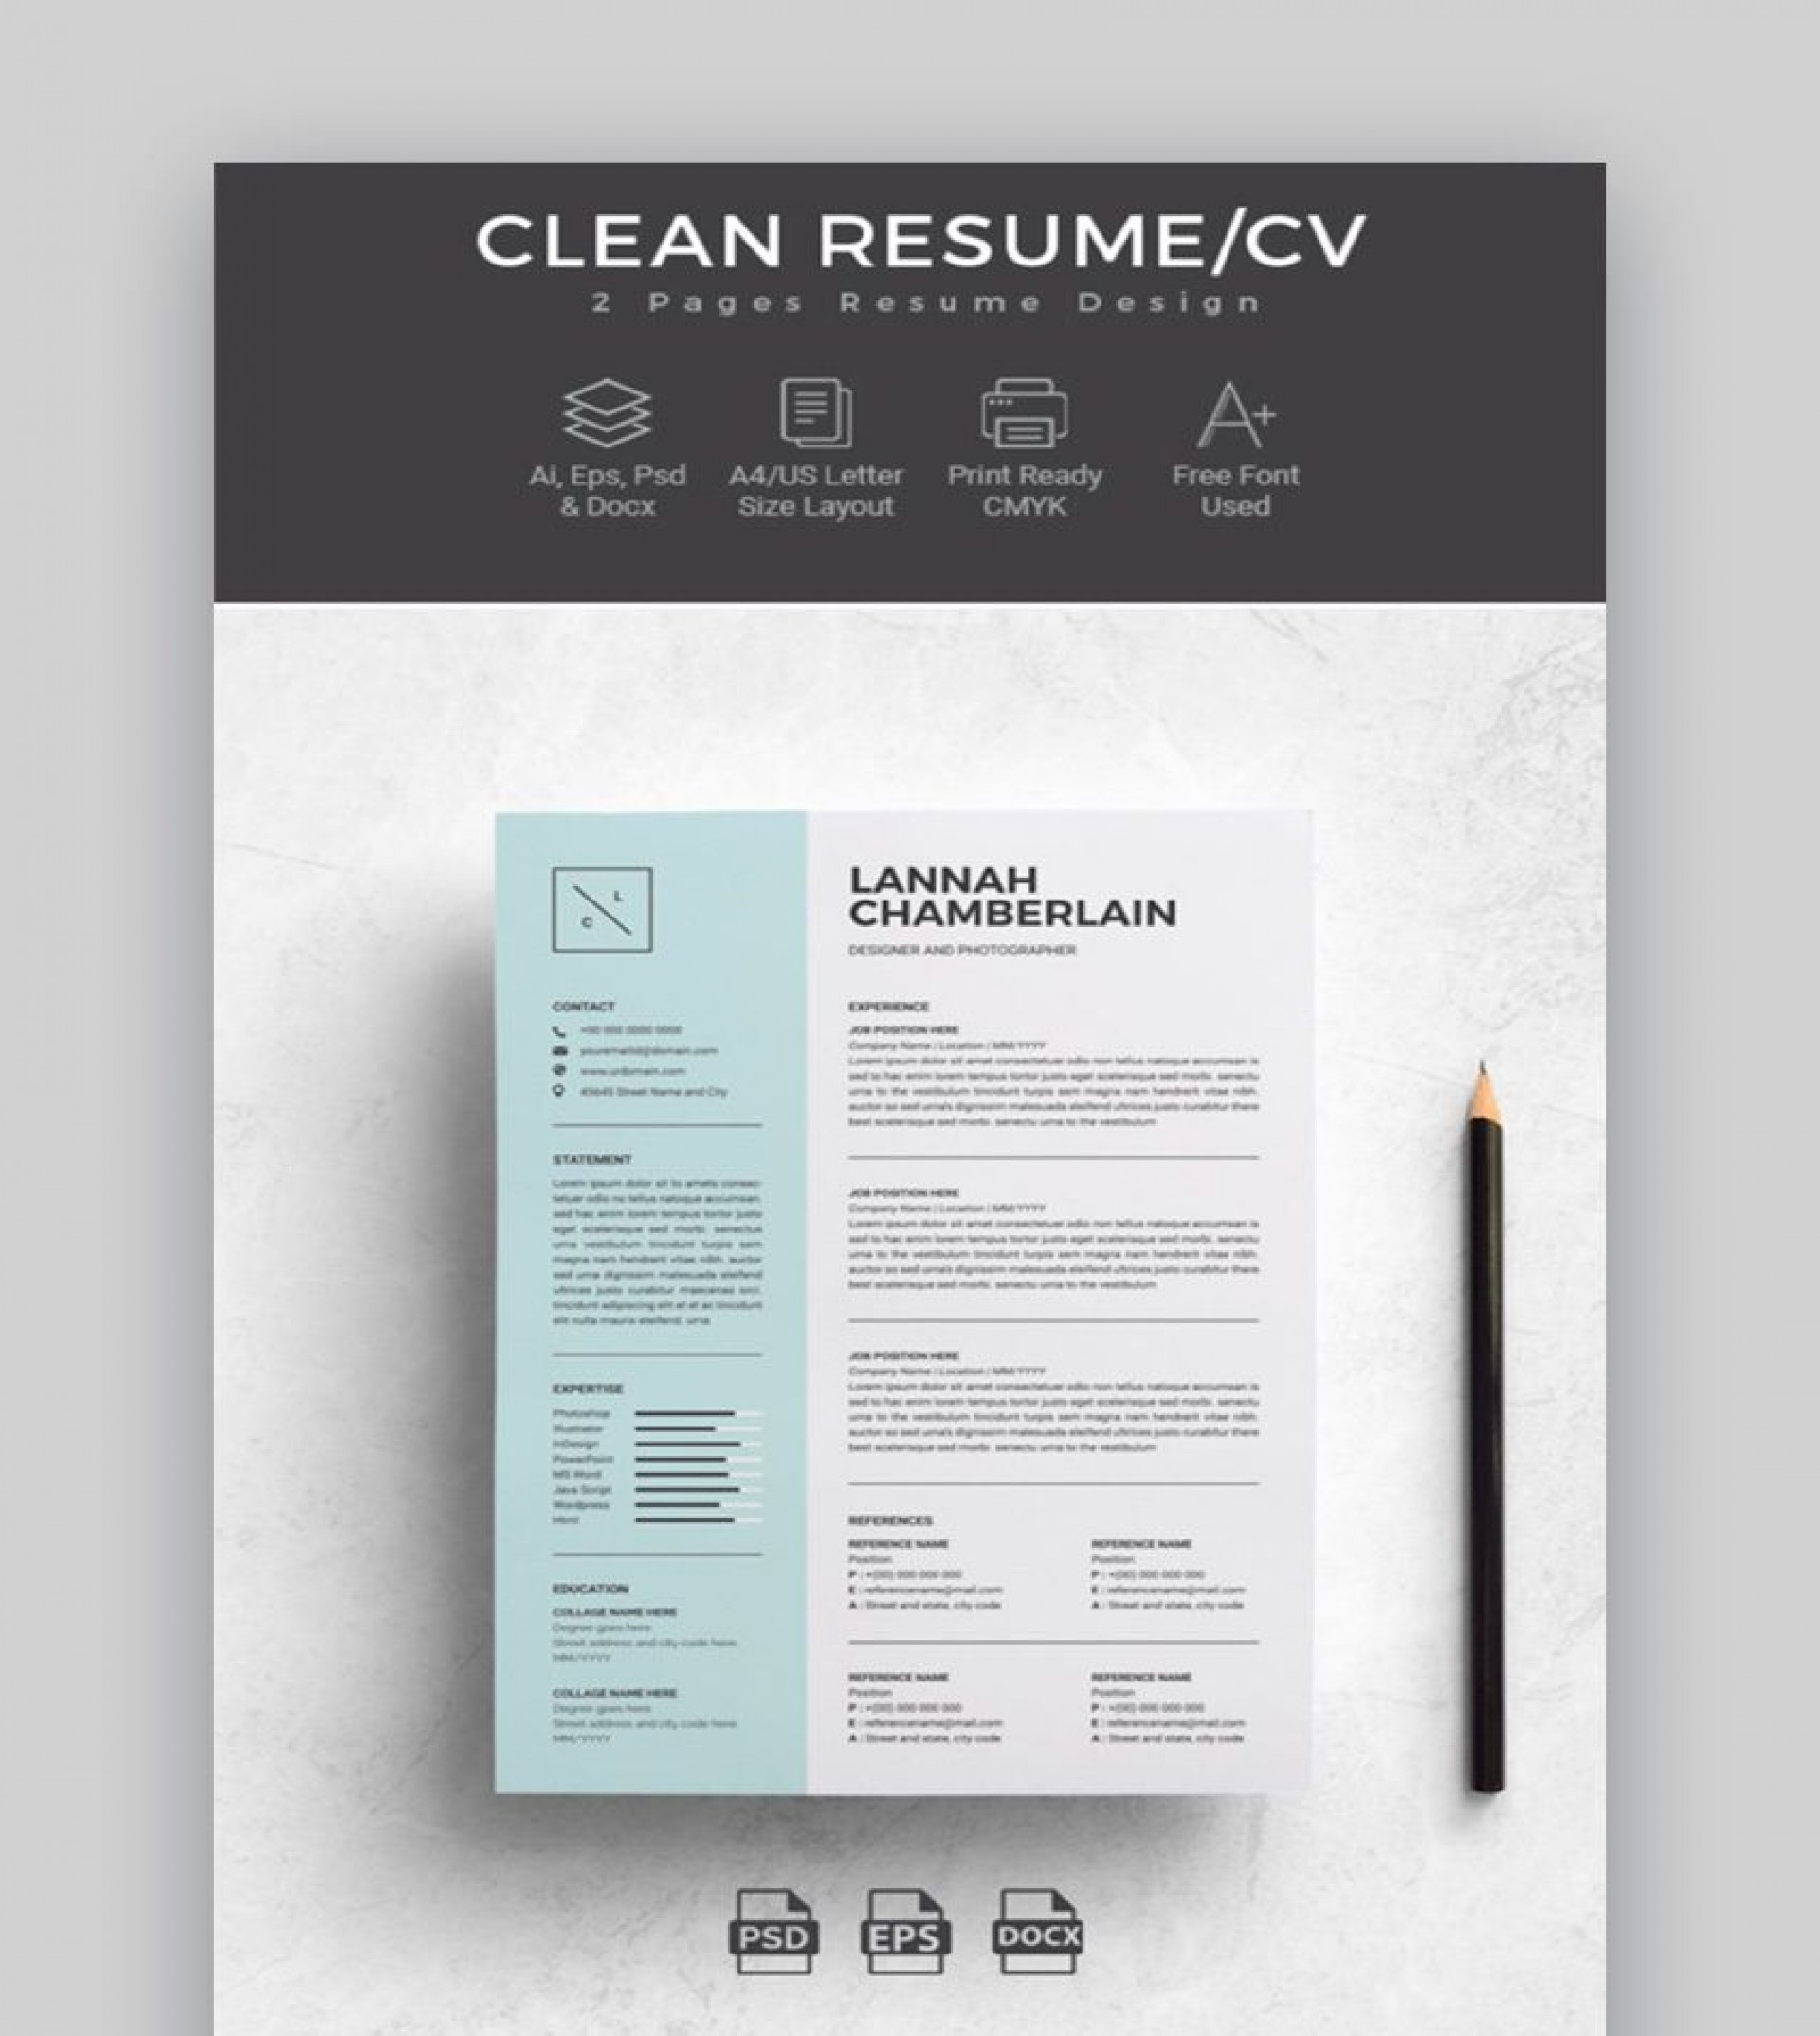 004 Best Word Resume Template Free High Definition  Microsoft 2010 Download 2019 Modern1920